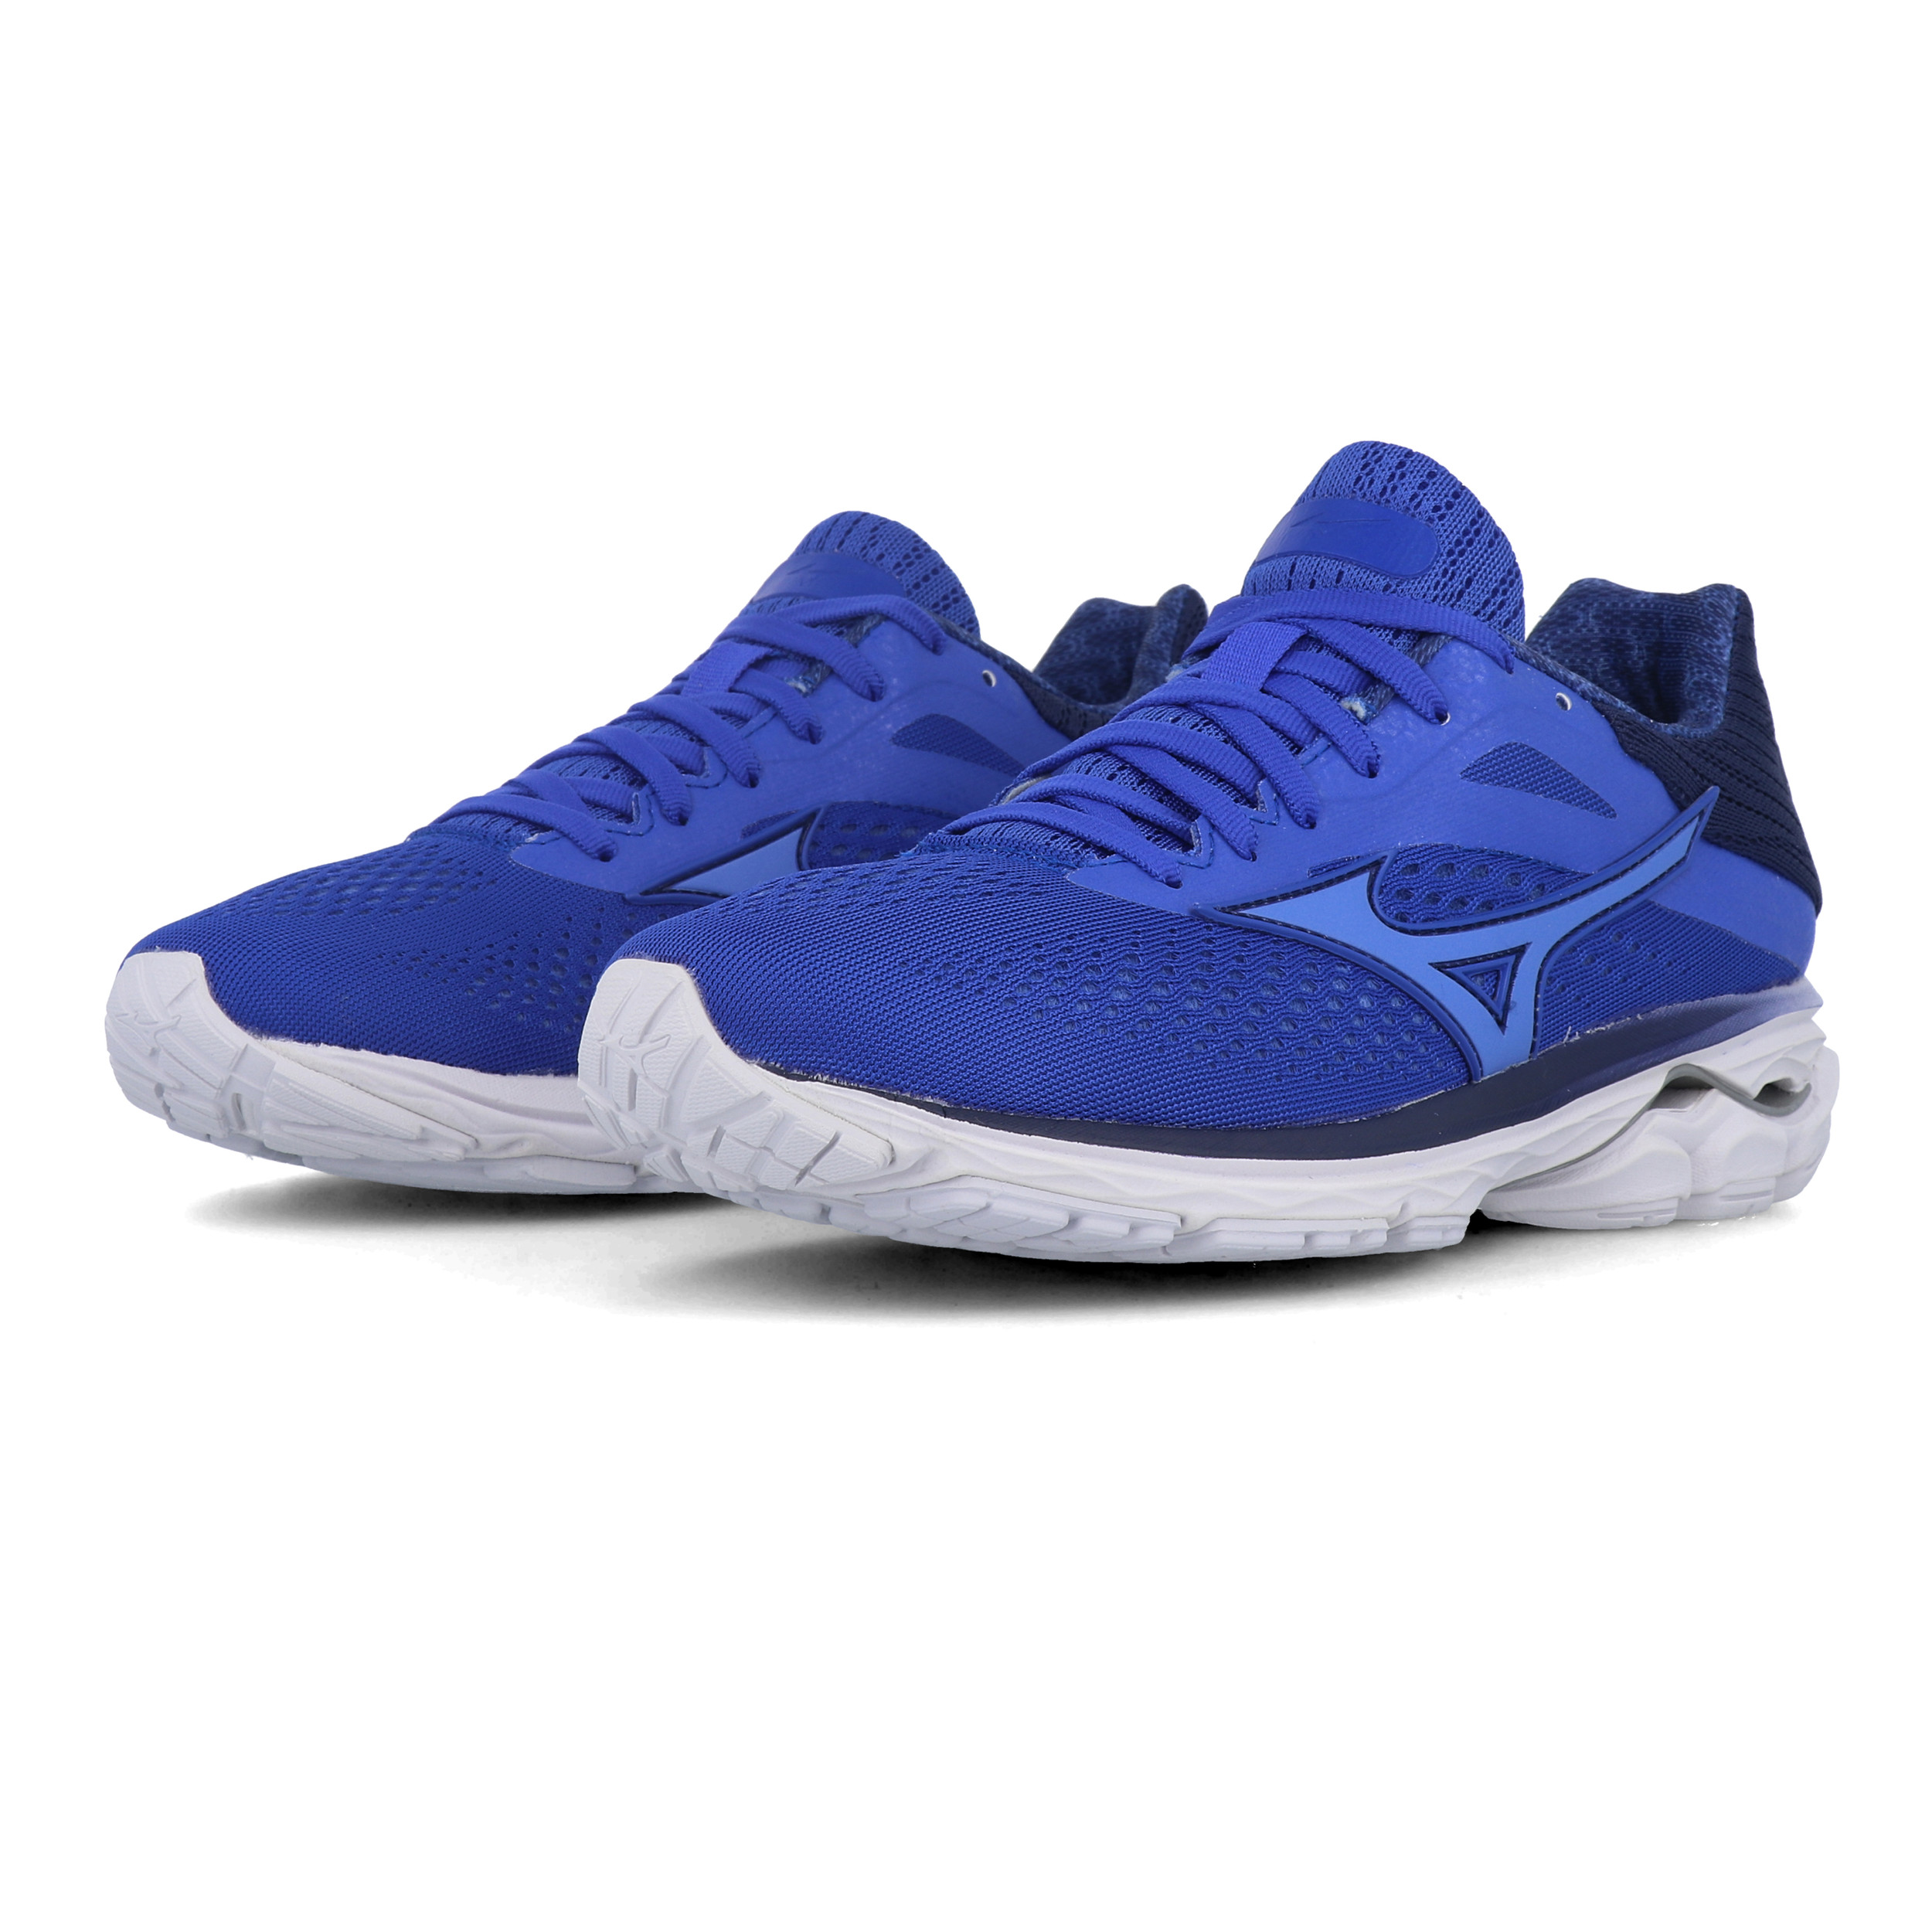 Mizuno Wave Rider 23 Women's Running Shoes - SS20